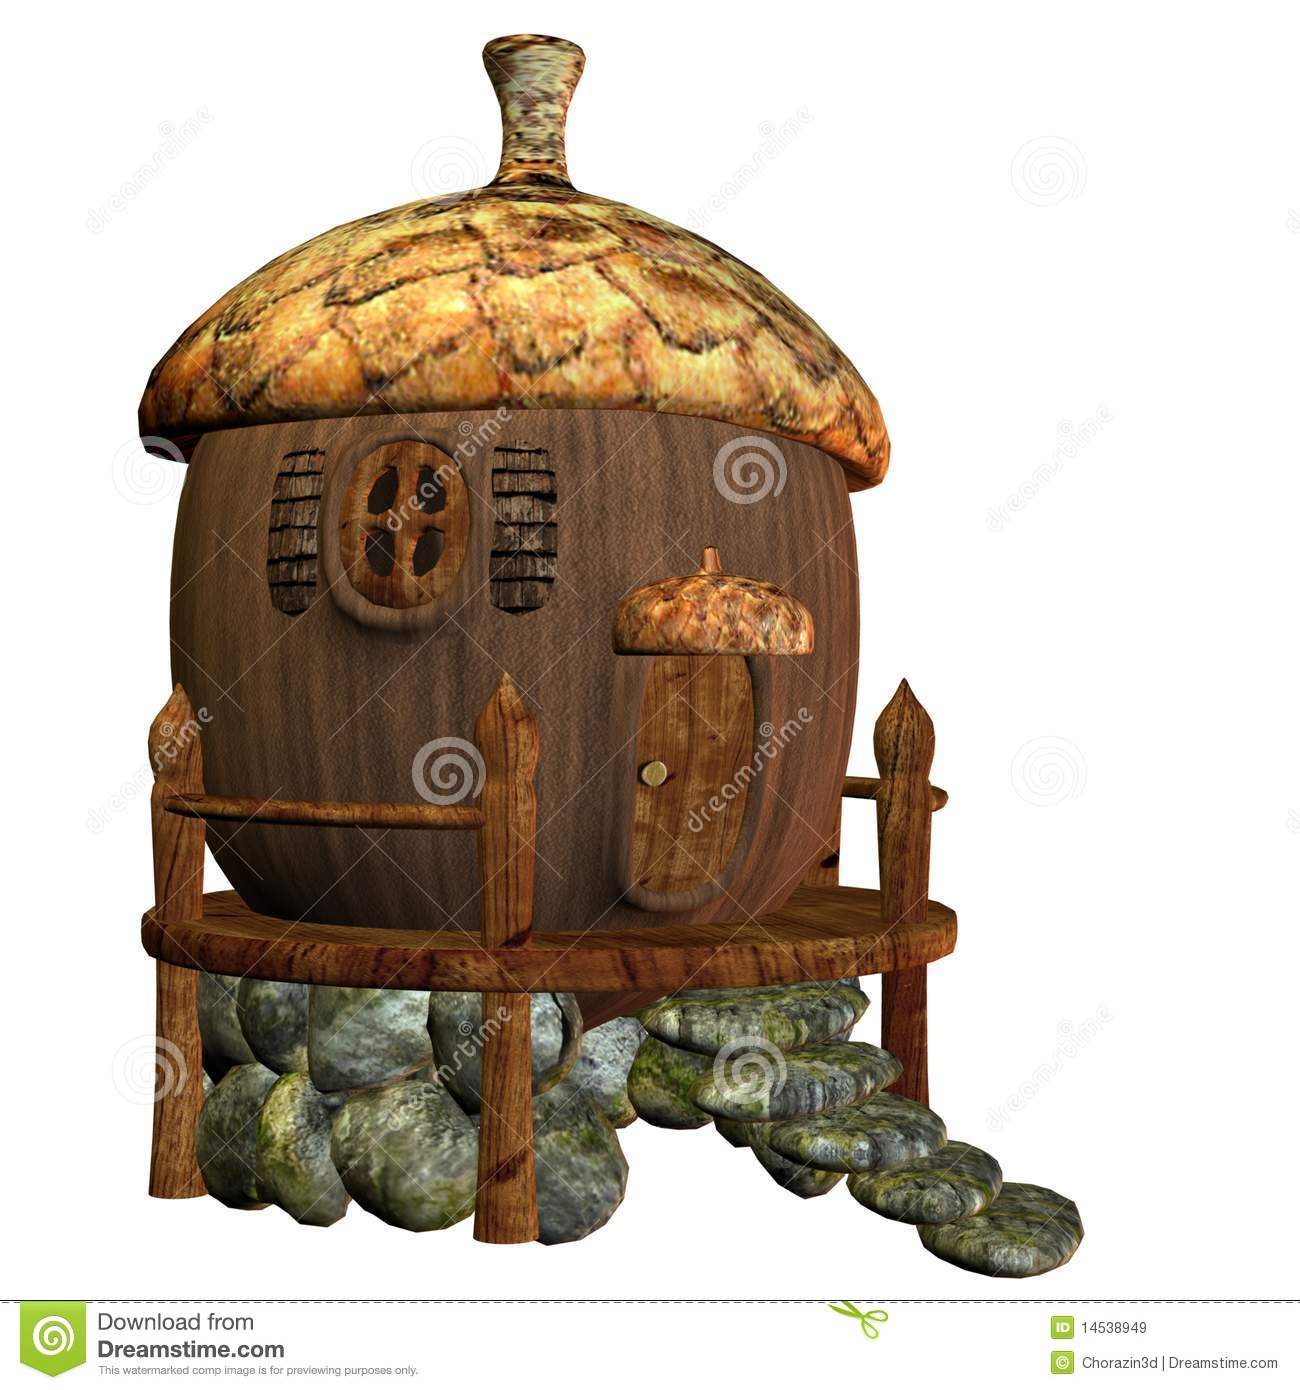 fairy house 3 royalty free stock images image 14538949. Black Bedroom Furniture Sets. Home Design Ideas